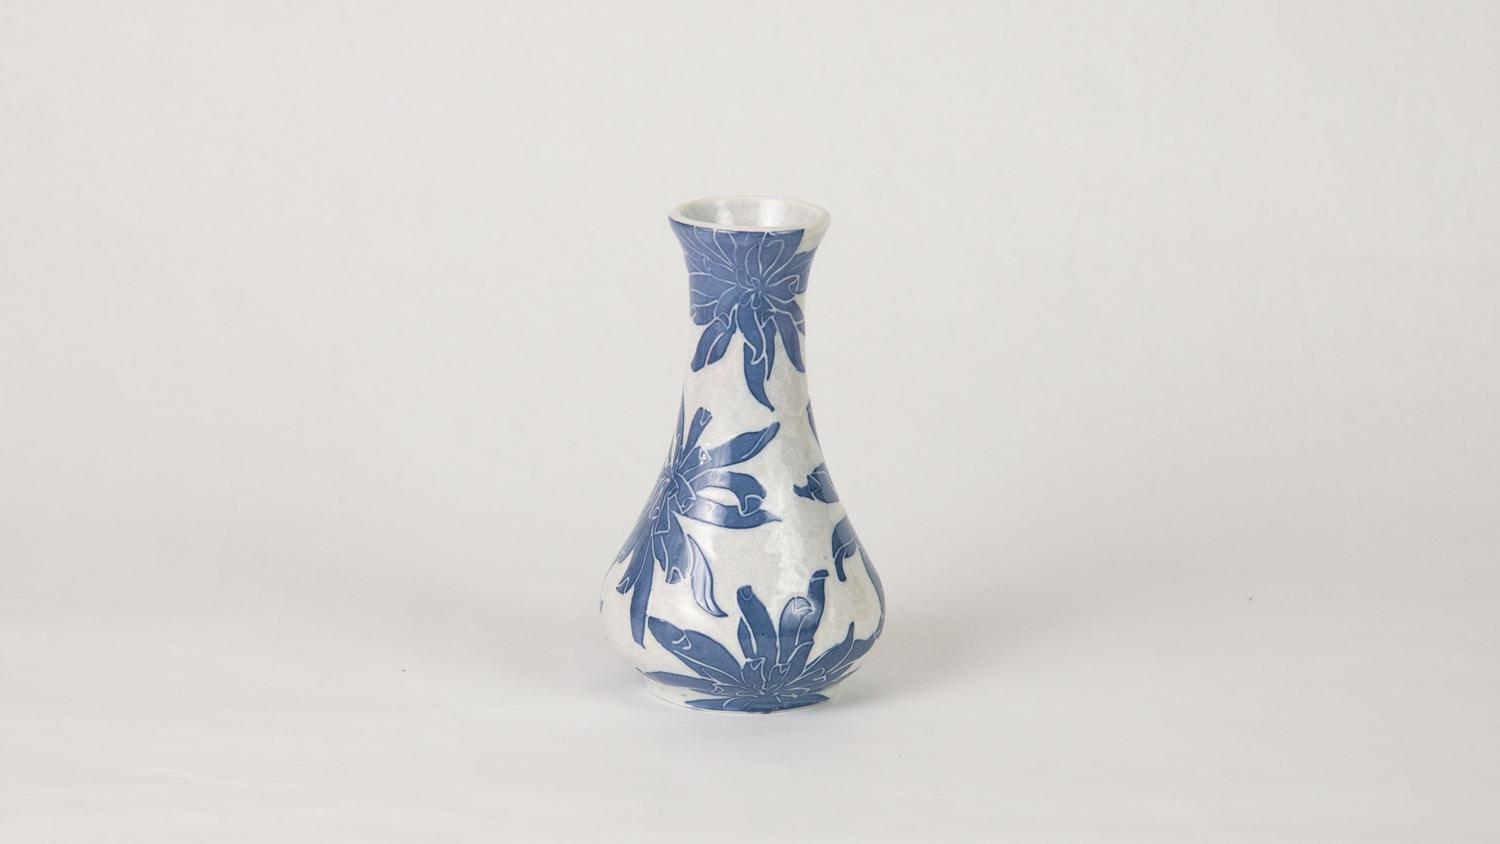 Gunnar Wennerberg for Gustavsberg Porcelain, vase, 1902, ceramic, 1980-4-16, Gift of Department of Ceramic Engineering, UIUC, C.W. Parmelee Collection